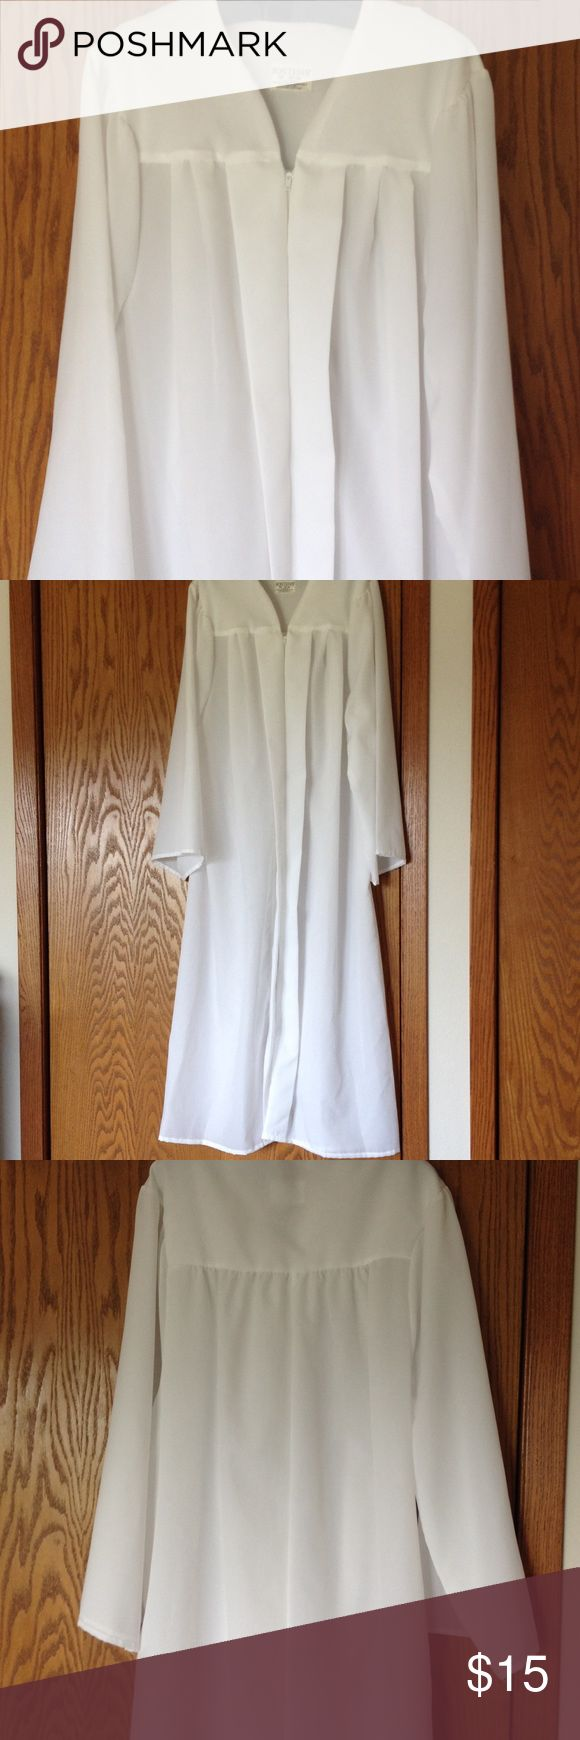 "White Jostens graduation gown and hat Size for 6' 01"" - 6' 03"". Cap and collar included. Josten Other"